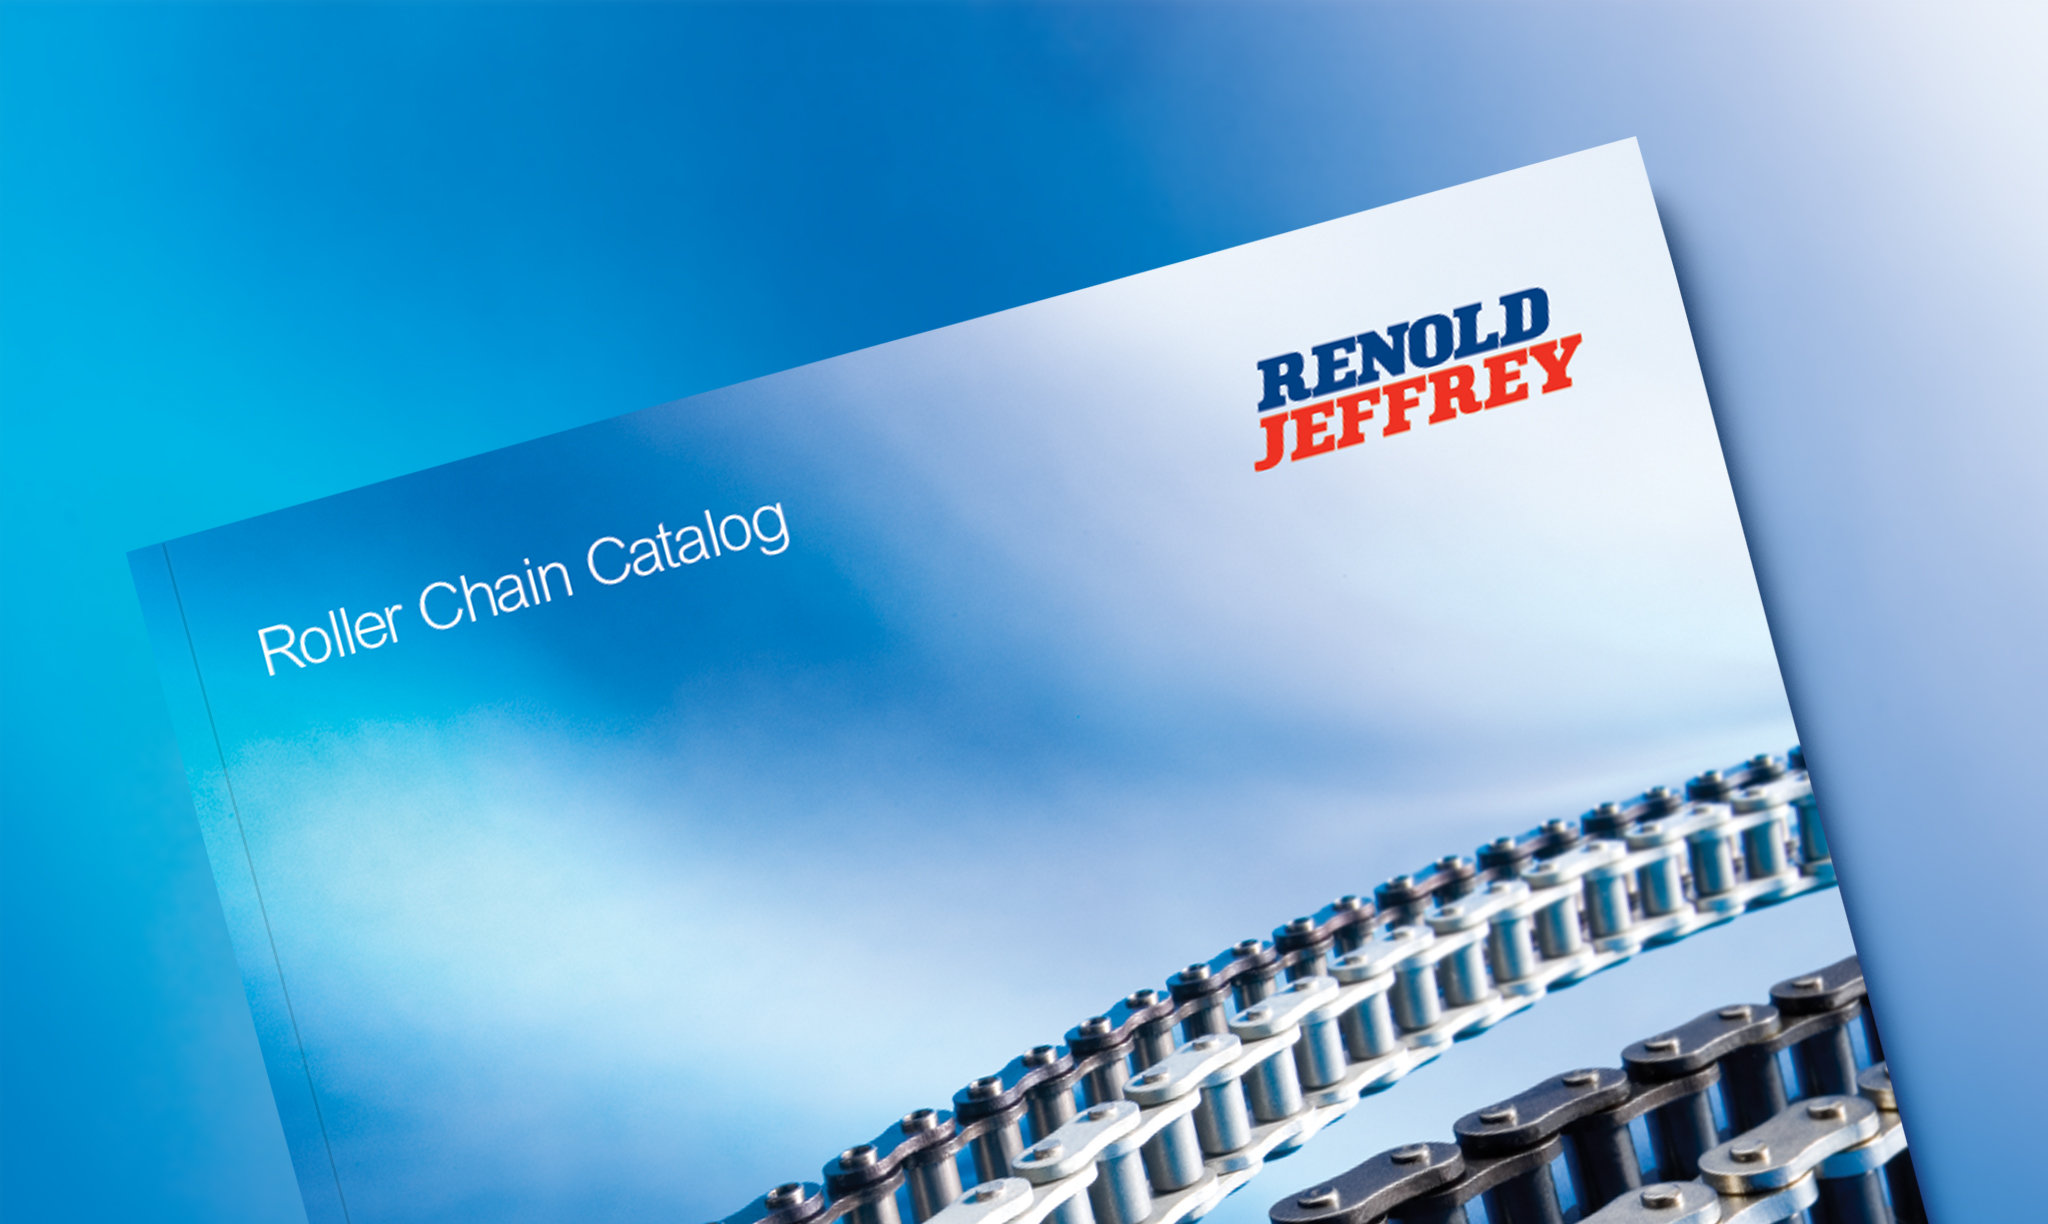 Renold Jeffrey Roller Chain Catalog